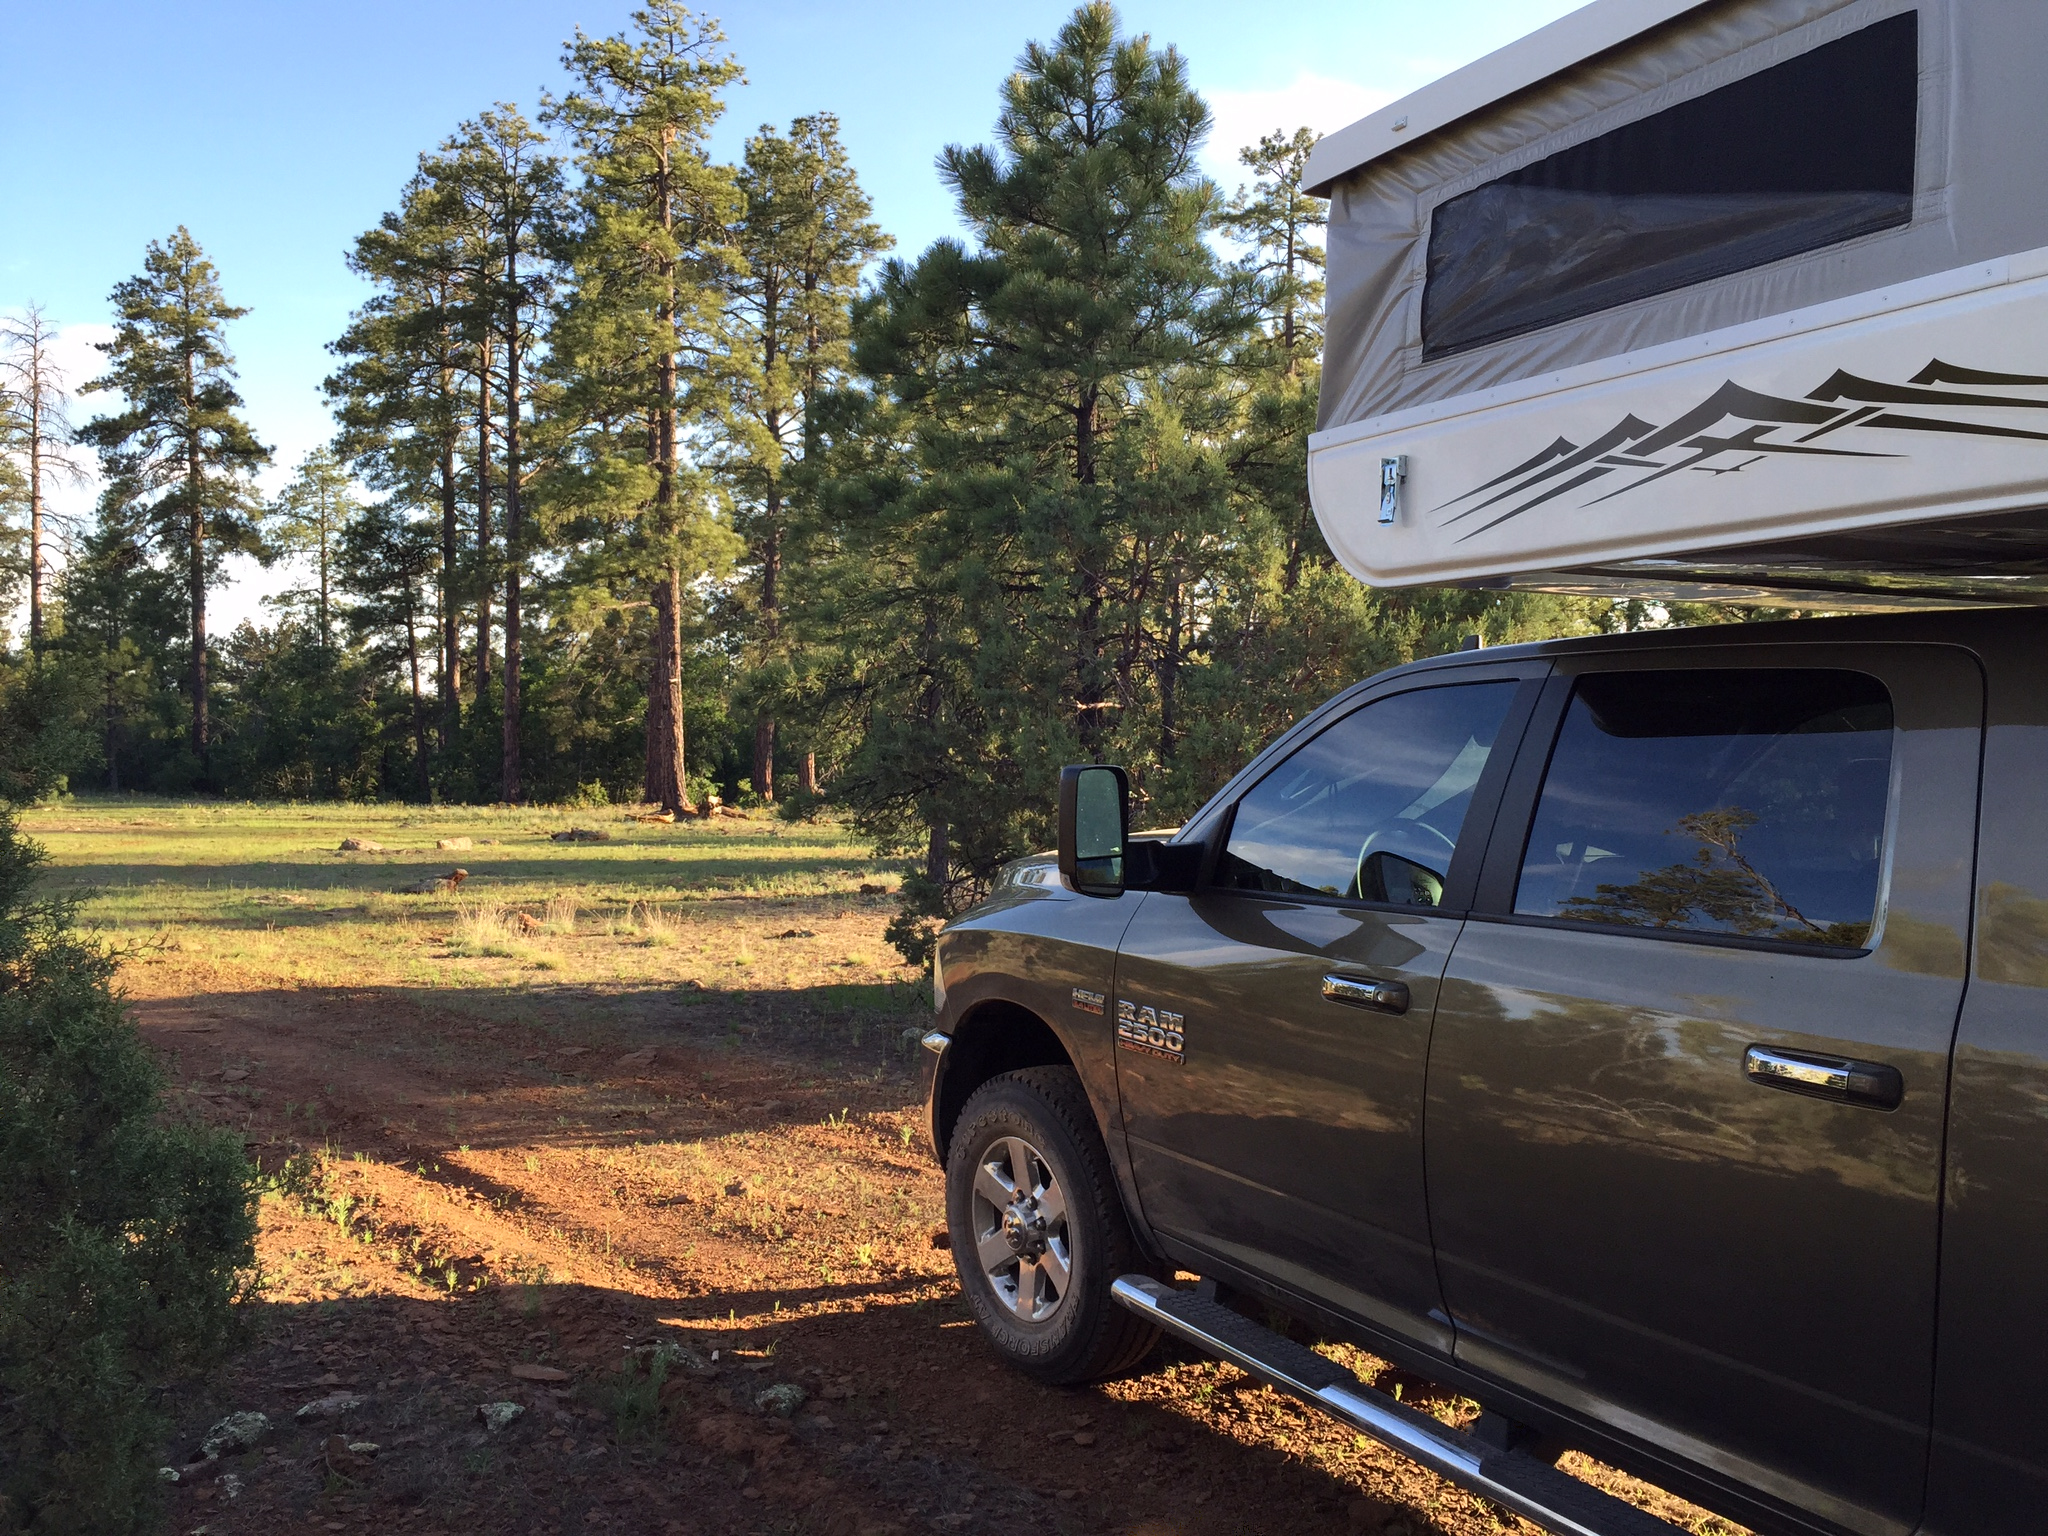 Our beautiful campsite in the Kaibab National Forest